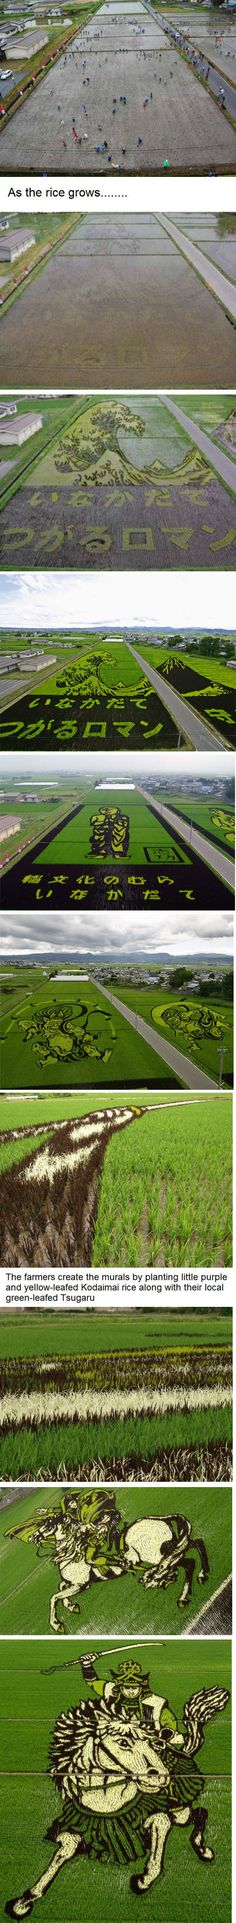 Rice fields in Japan, planted with different colored rice plants. This beats the corn field murals any day!